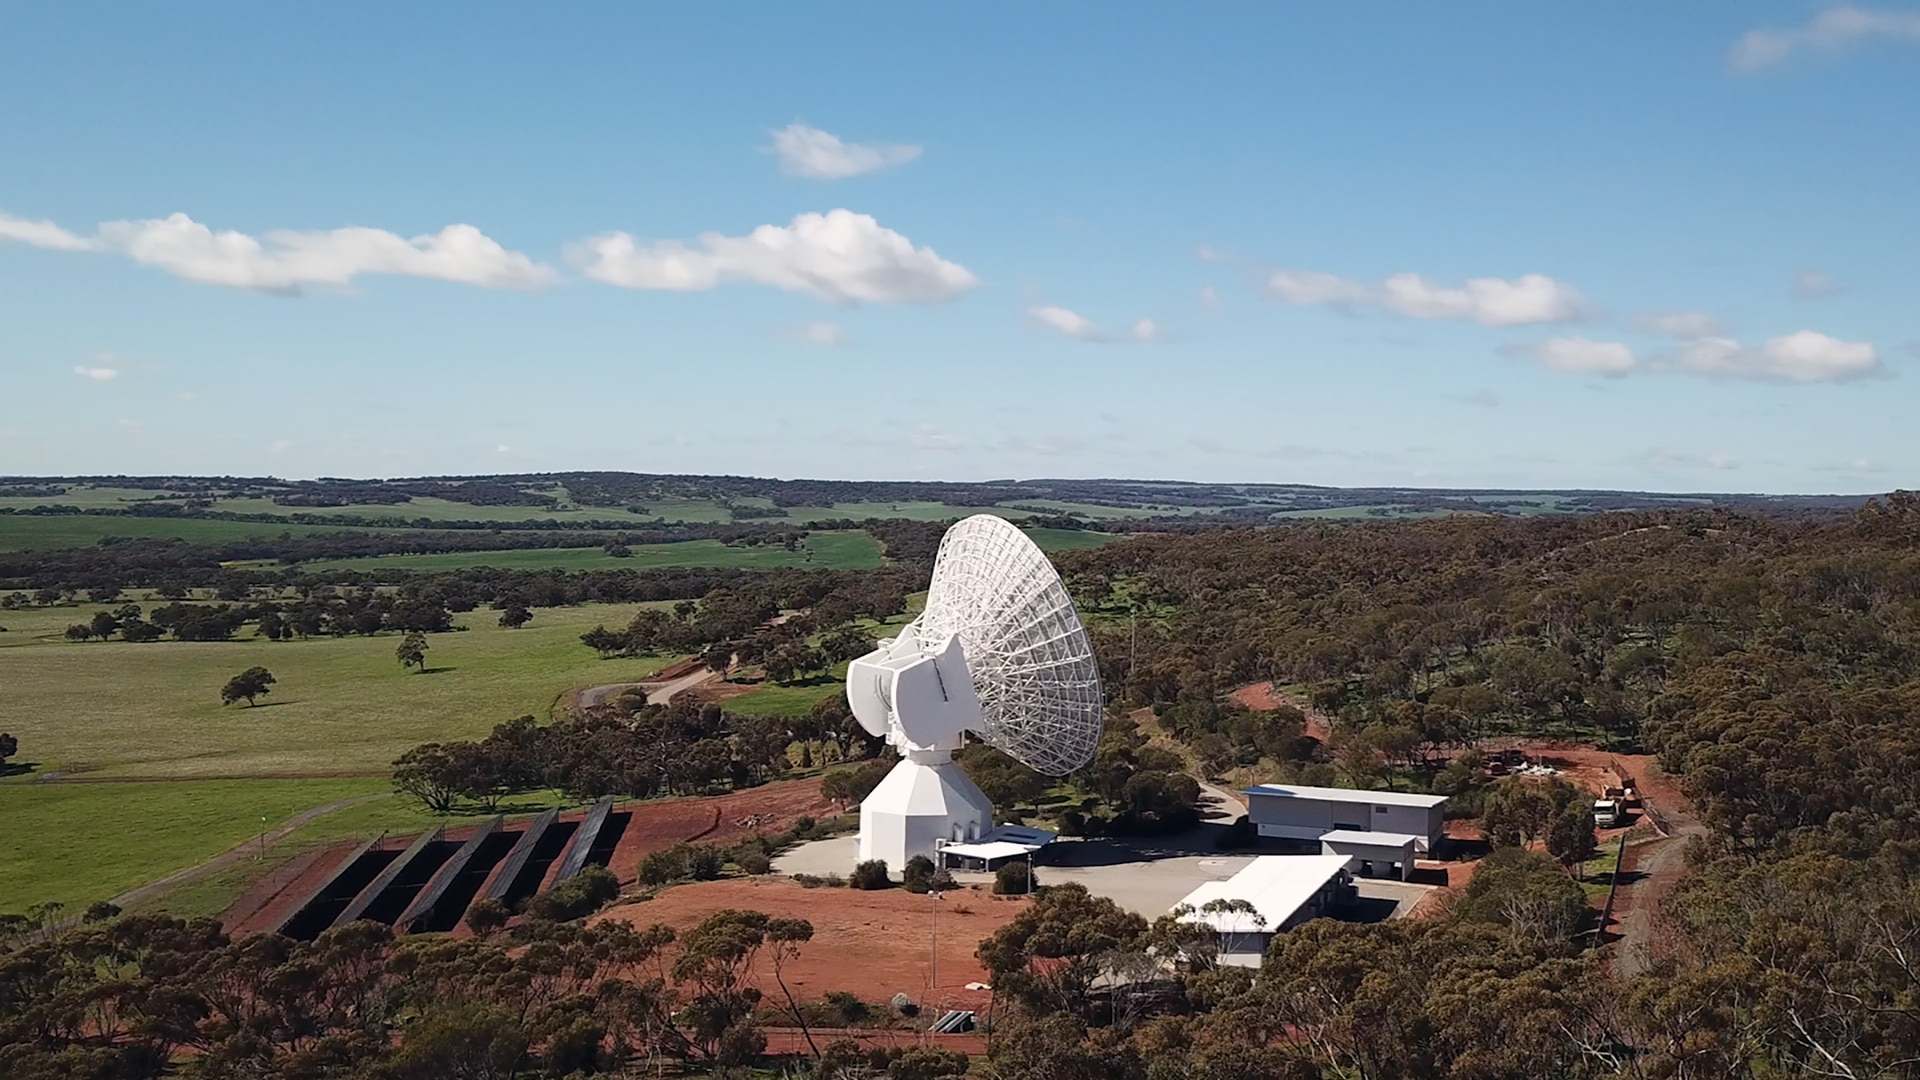 Space Agency science technology Australia international solar system